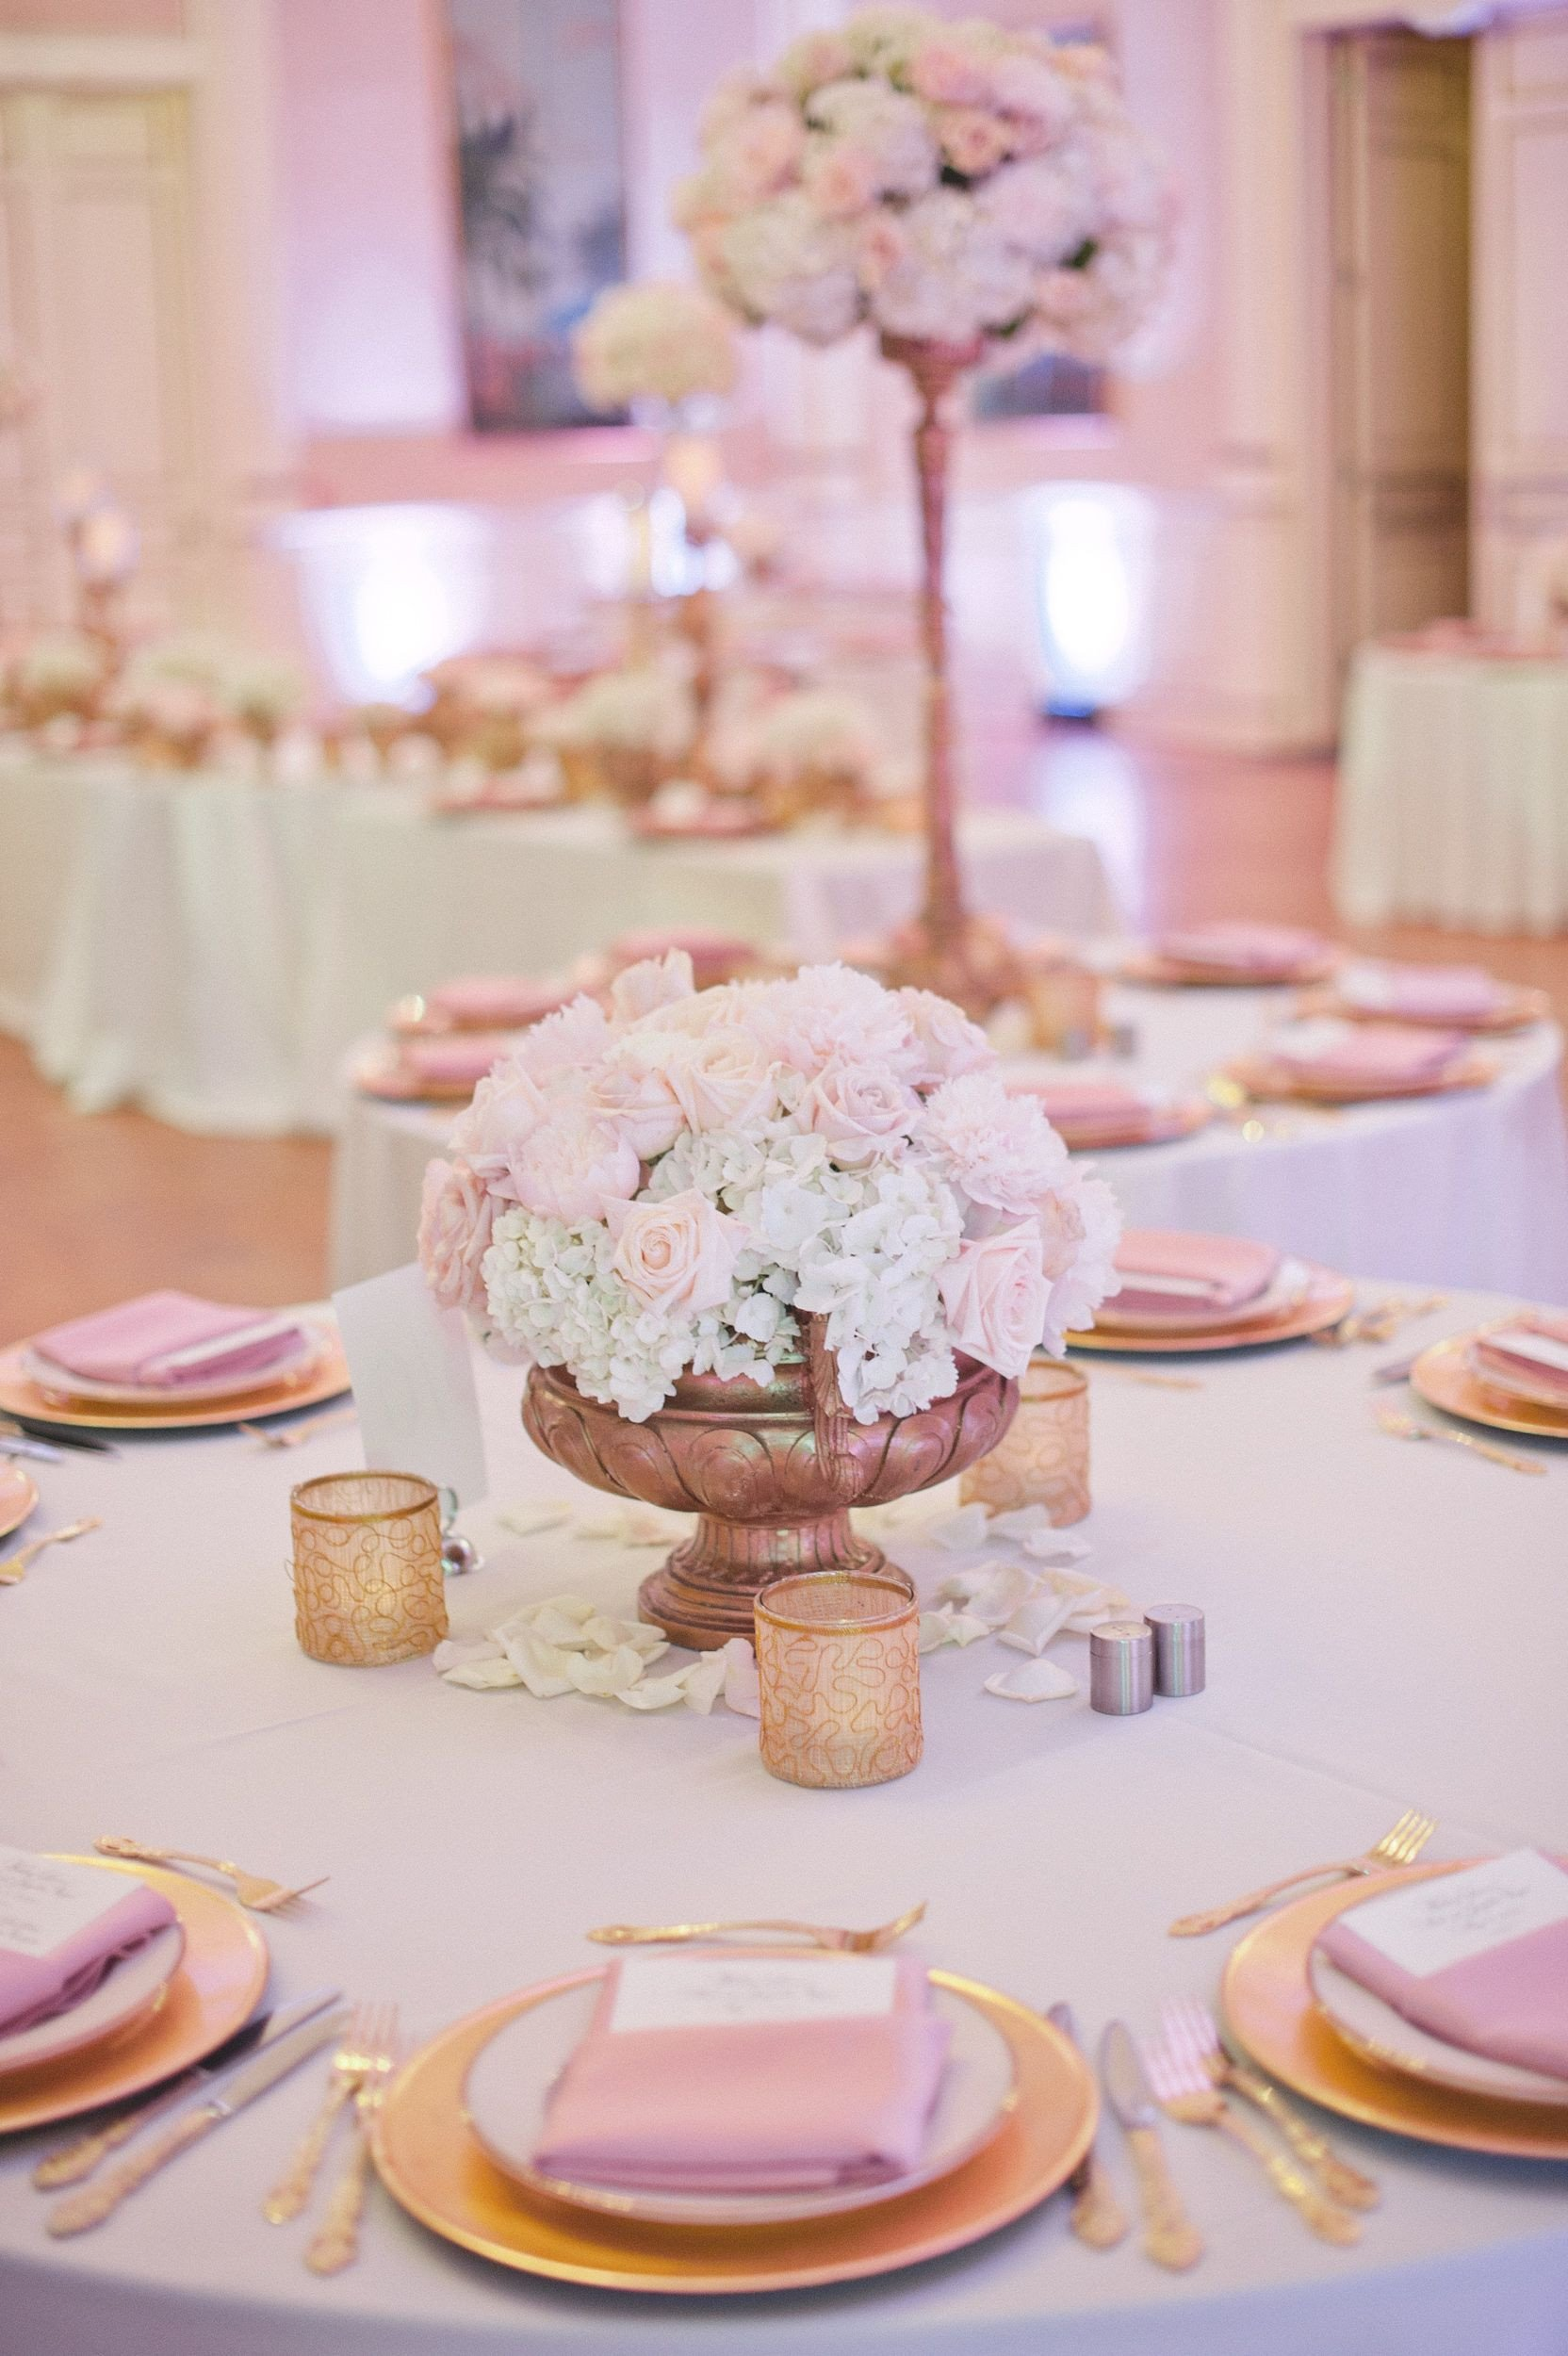 Pink and White Wedding Decor Lovely White Champagne and Pale Pink Wedding Flowers and Decor by Botanica Wedding Weddingflow